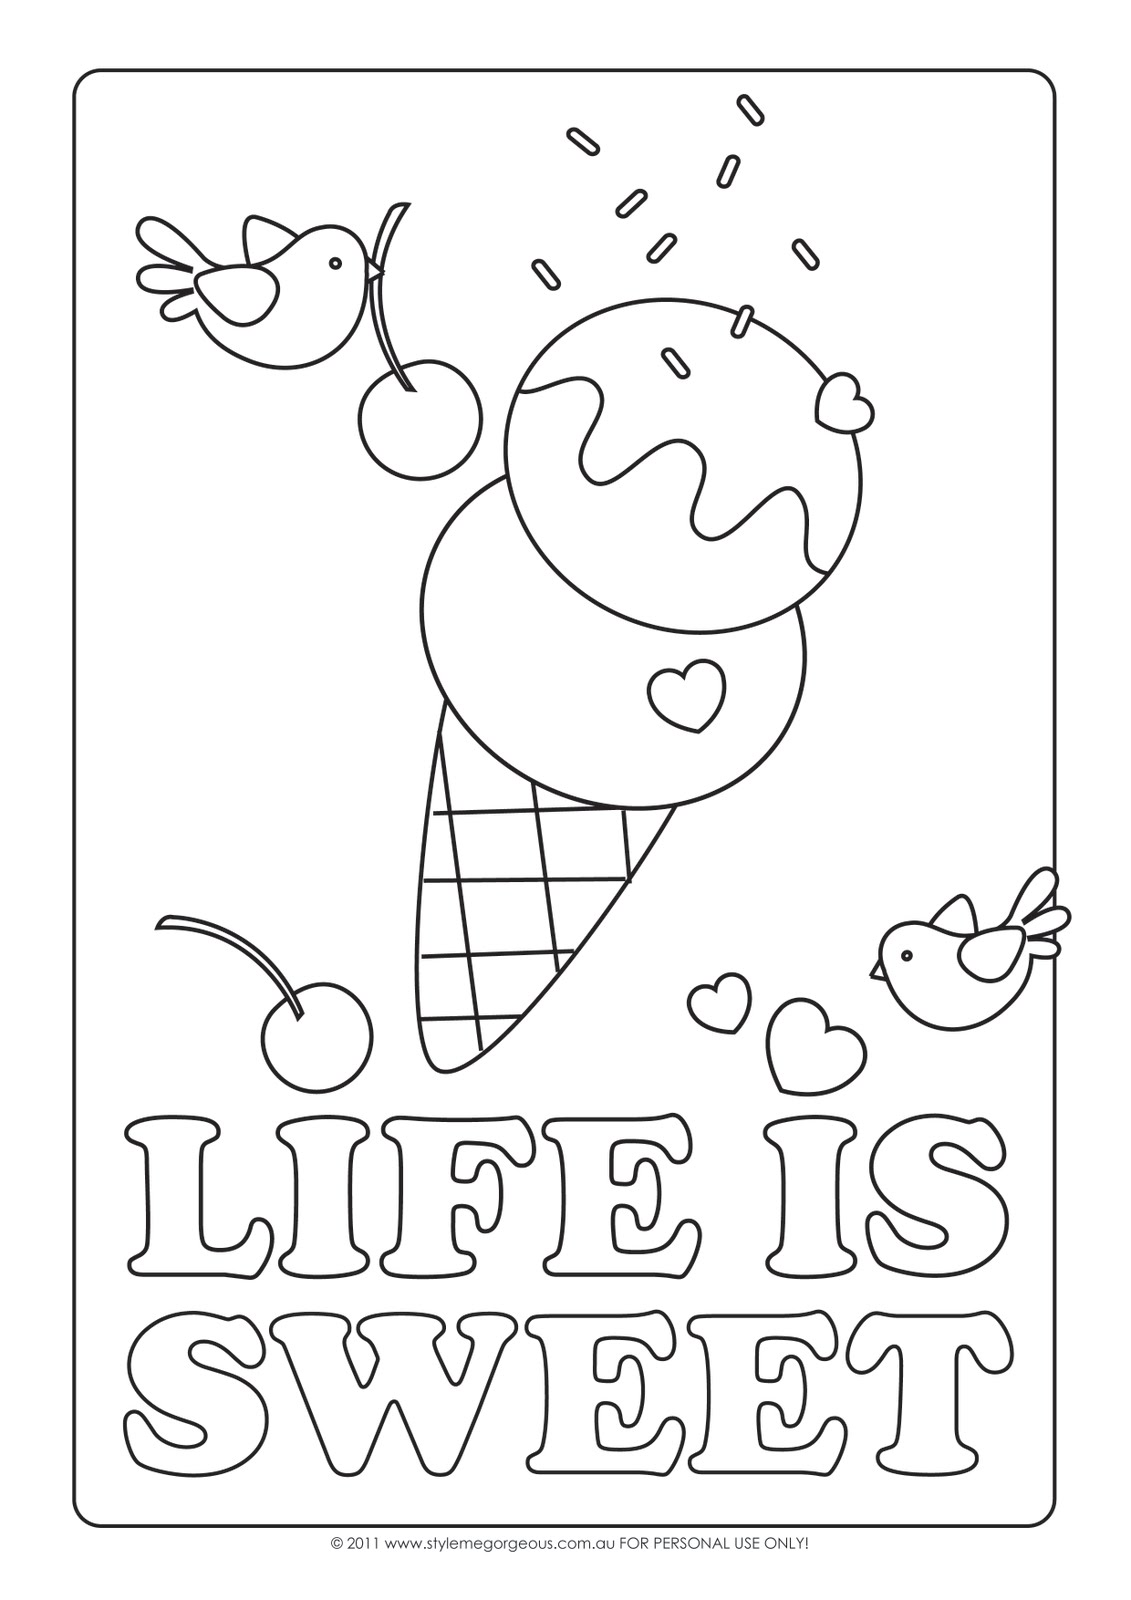 Style me gorgeous february 2011 for Sweet treats coloring pages